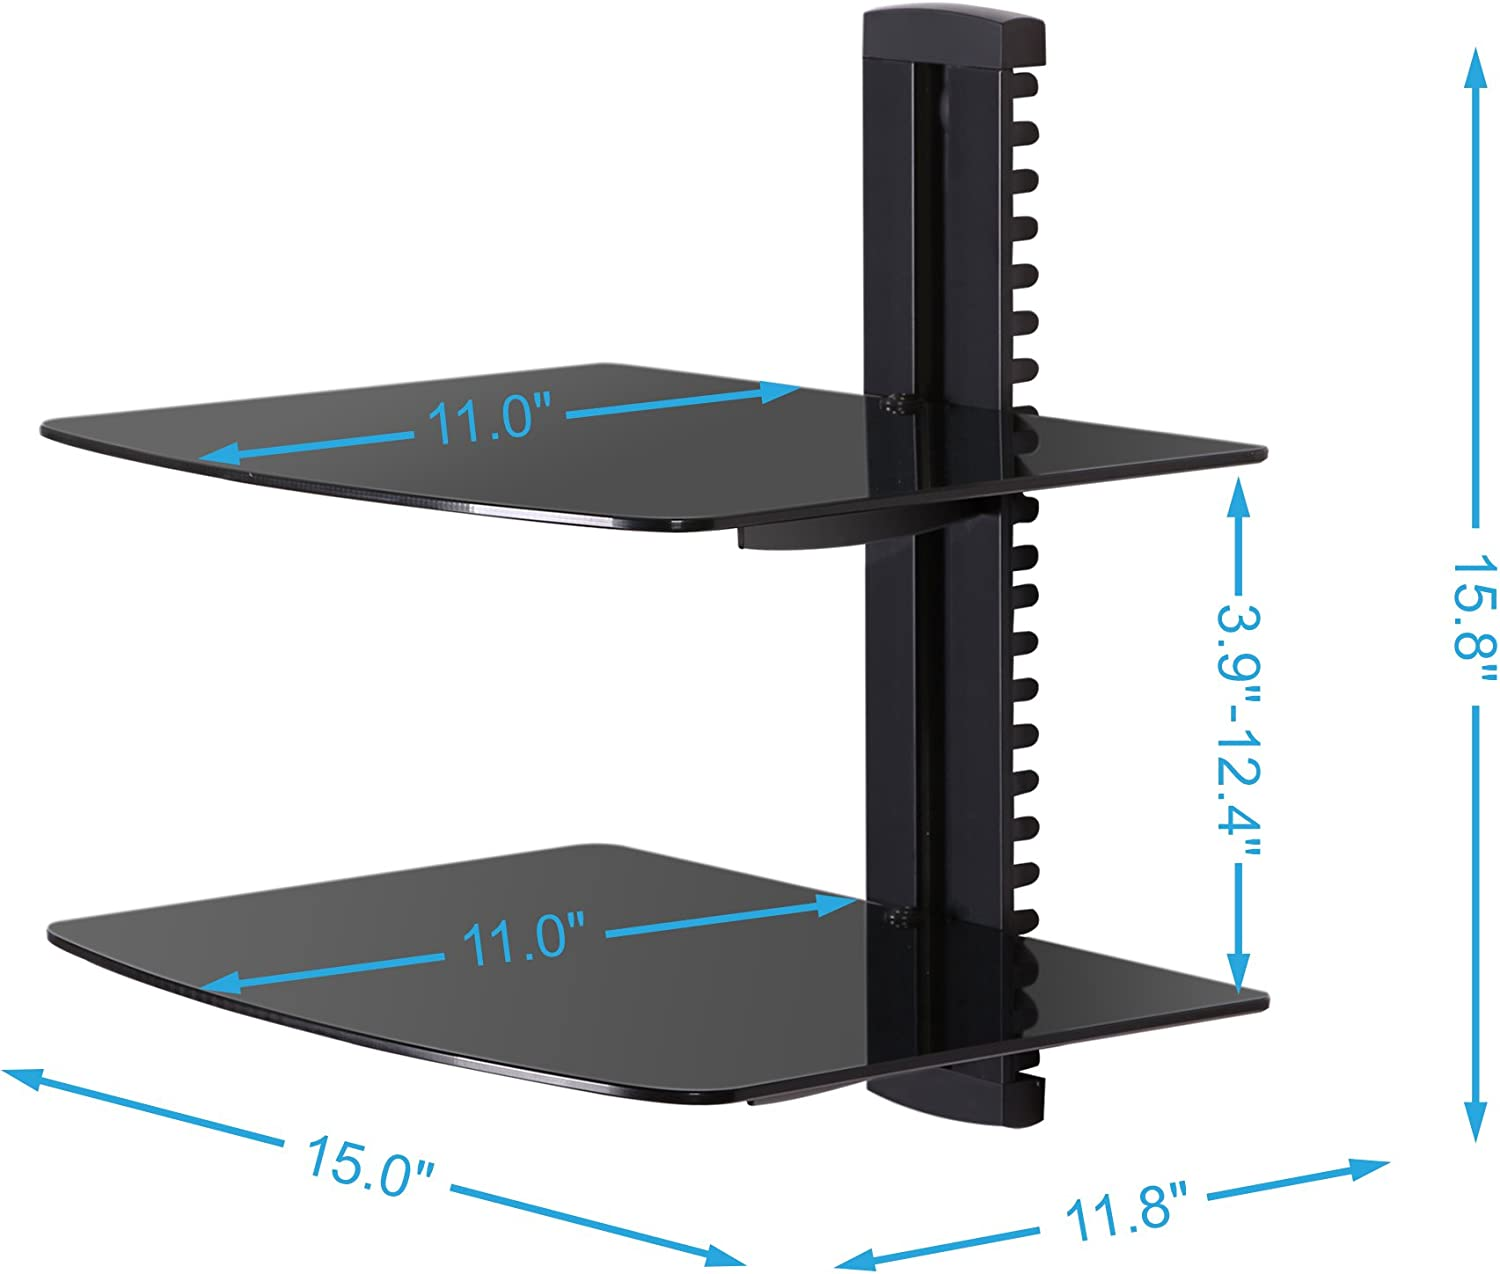 Fenge 2 Tiers Av Shelf Wall Mount Shelf Black Bracket Stand for AV Receiver Component Xbox Cable Boxes Gaming Systems